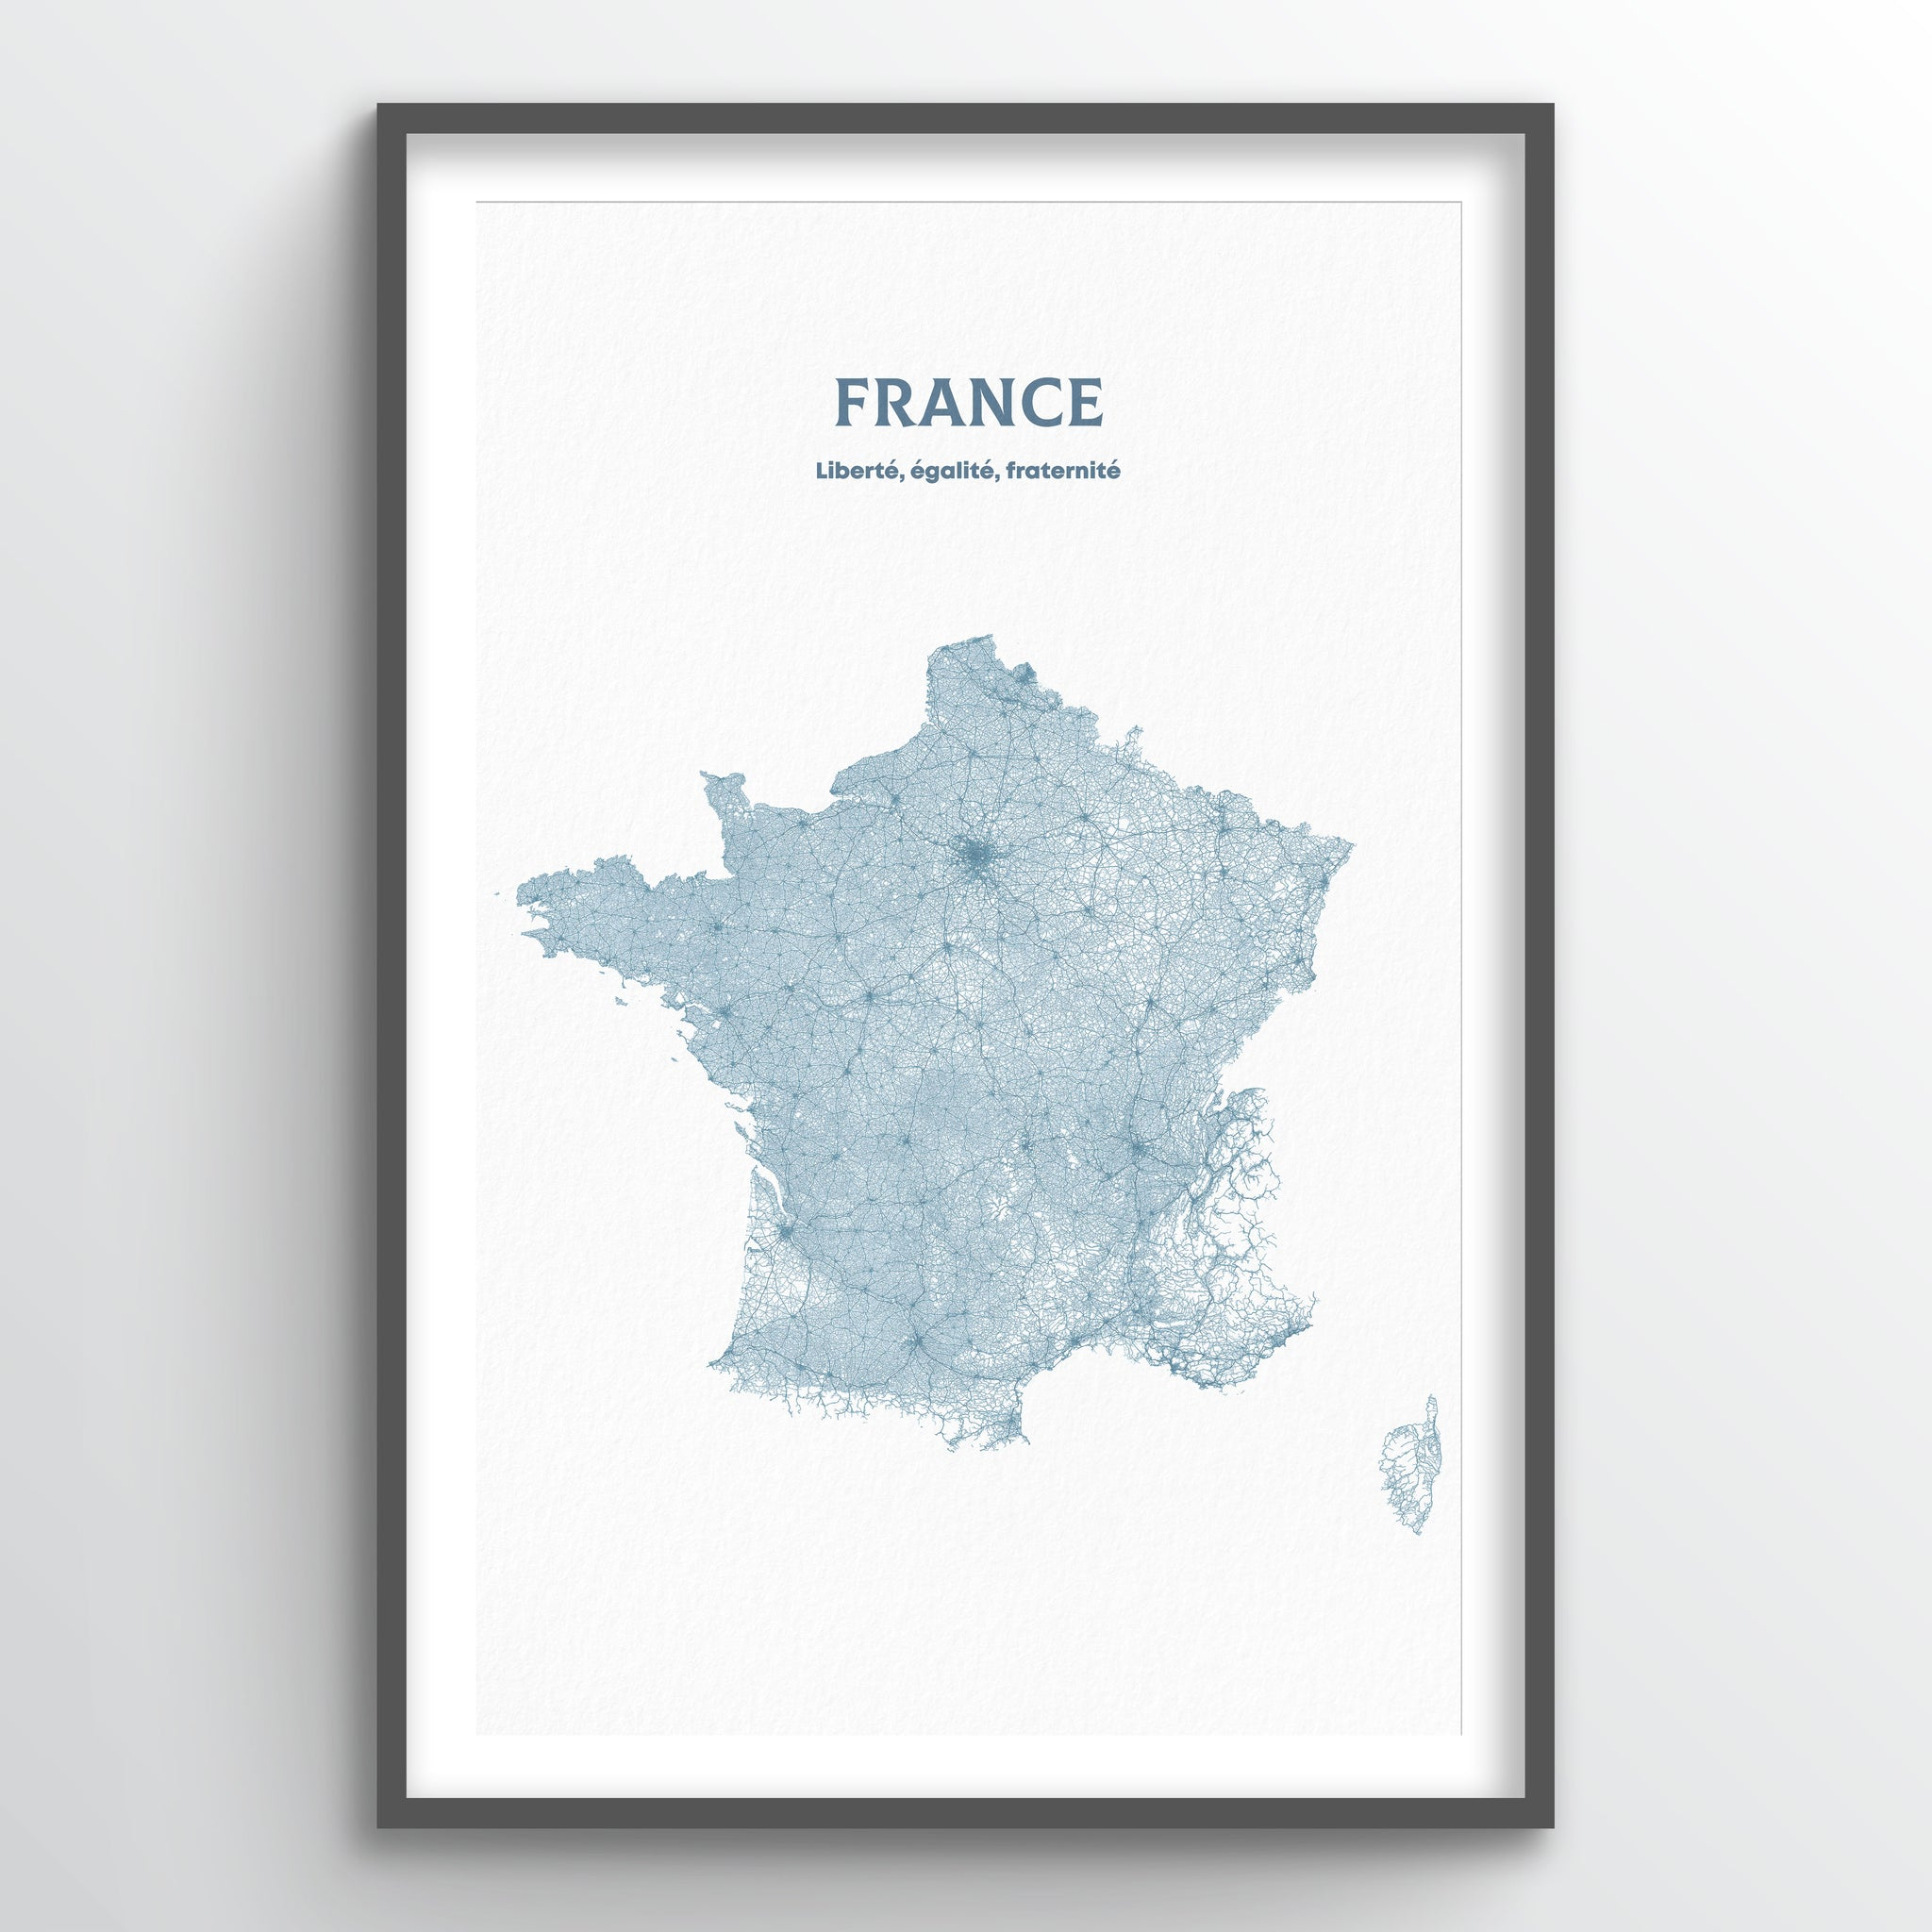 France - All Roads Art Print - Point Two Design